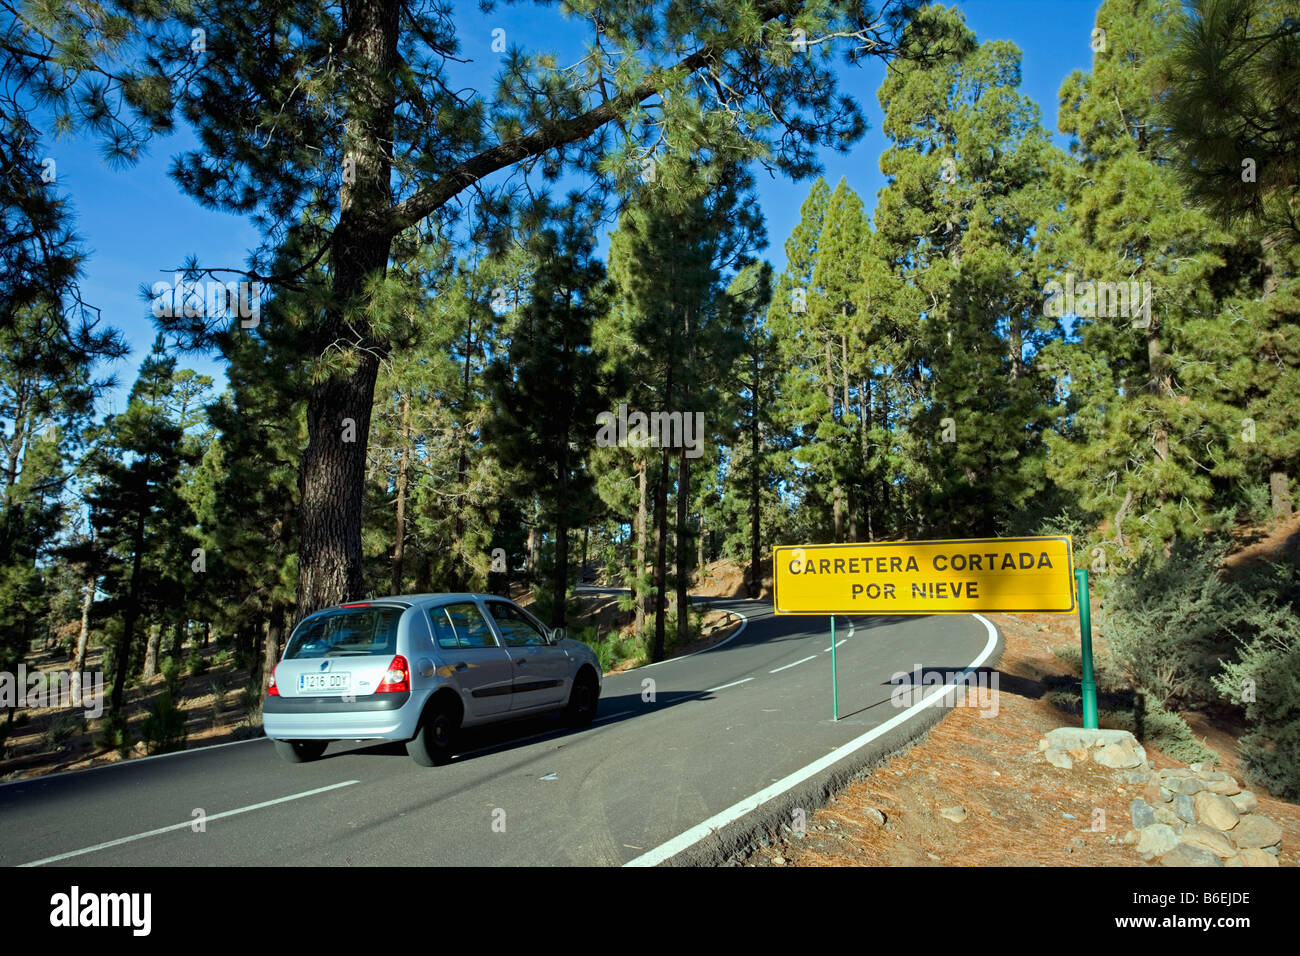 Spain, Canary Islands, Tenerife, National Park called TEIDE, Road sign saying that road is blocked due to snow - Stock Image